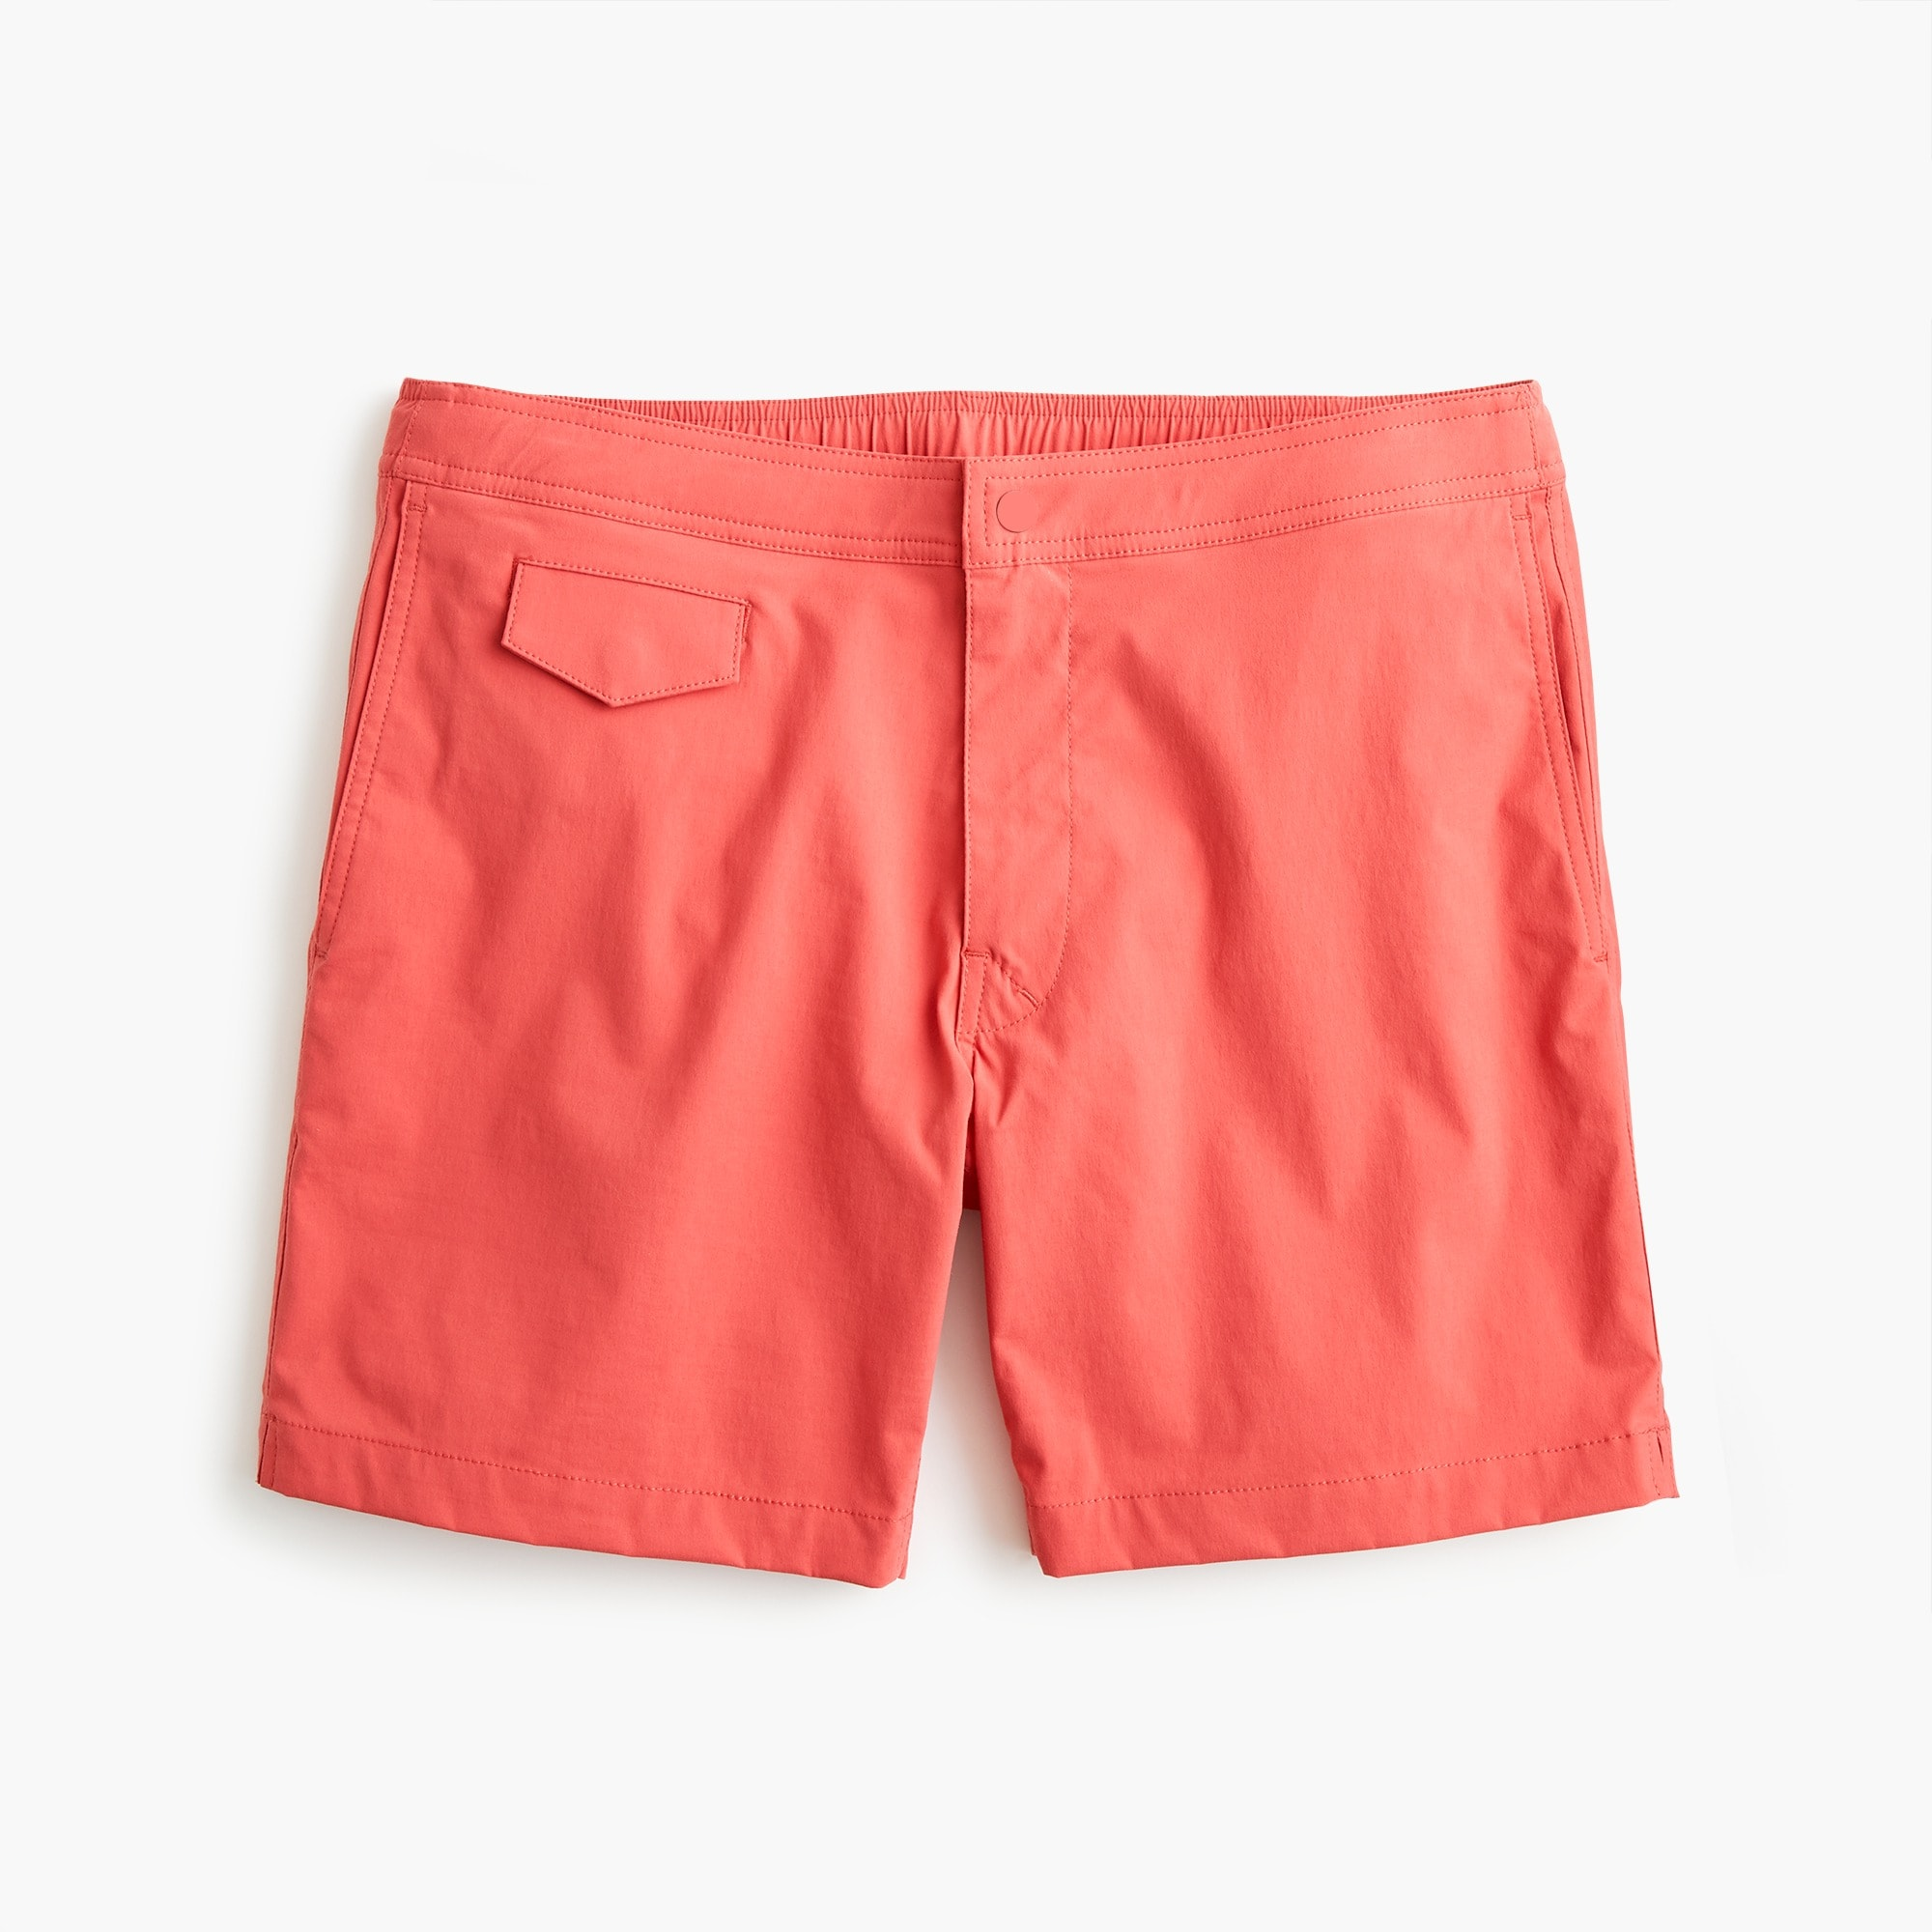 mens Pool short